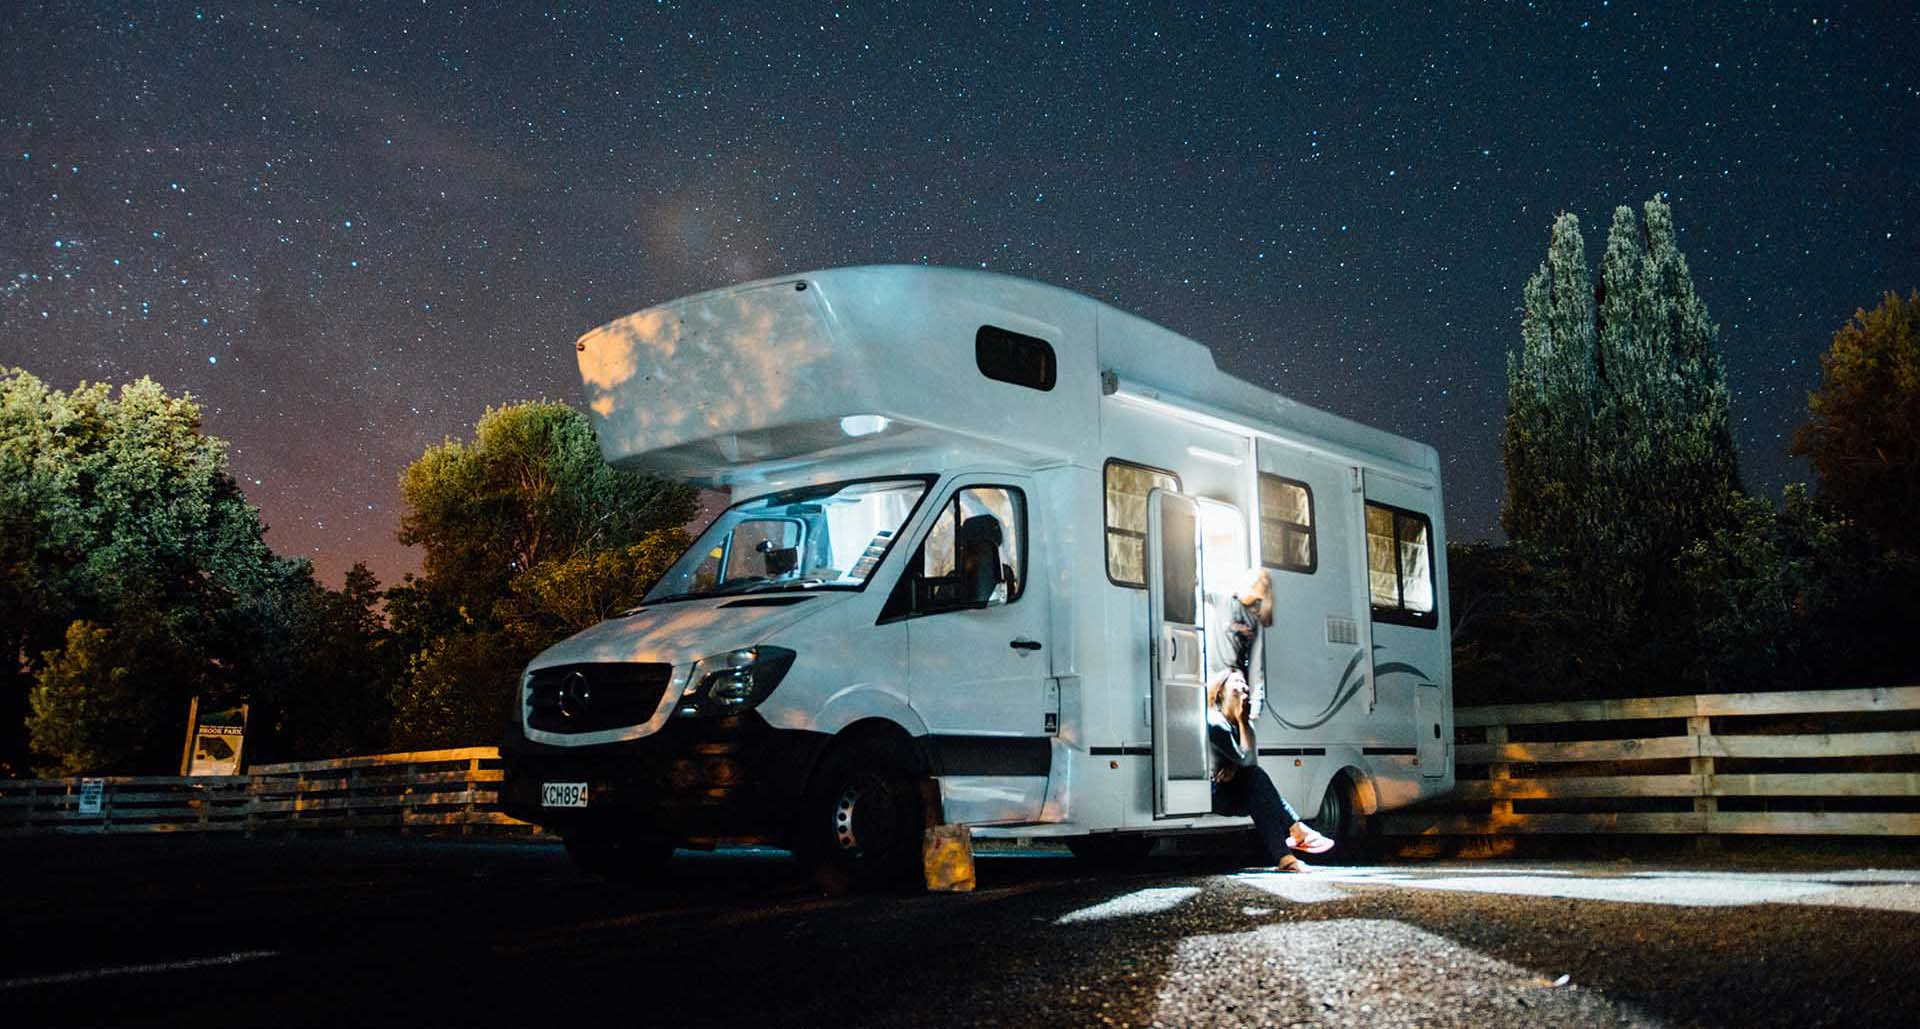 White motorhome parked at night